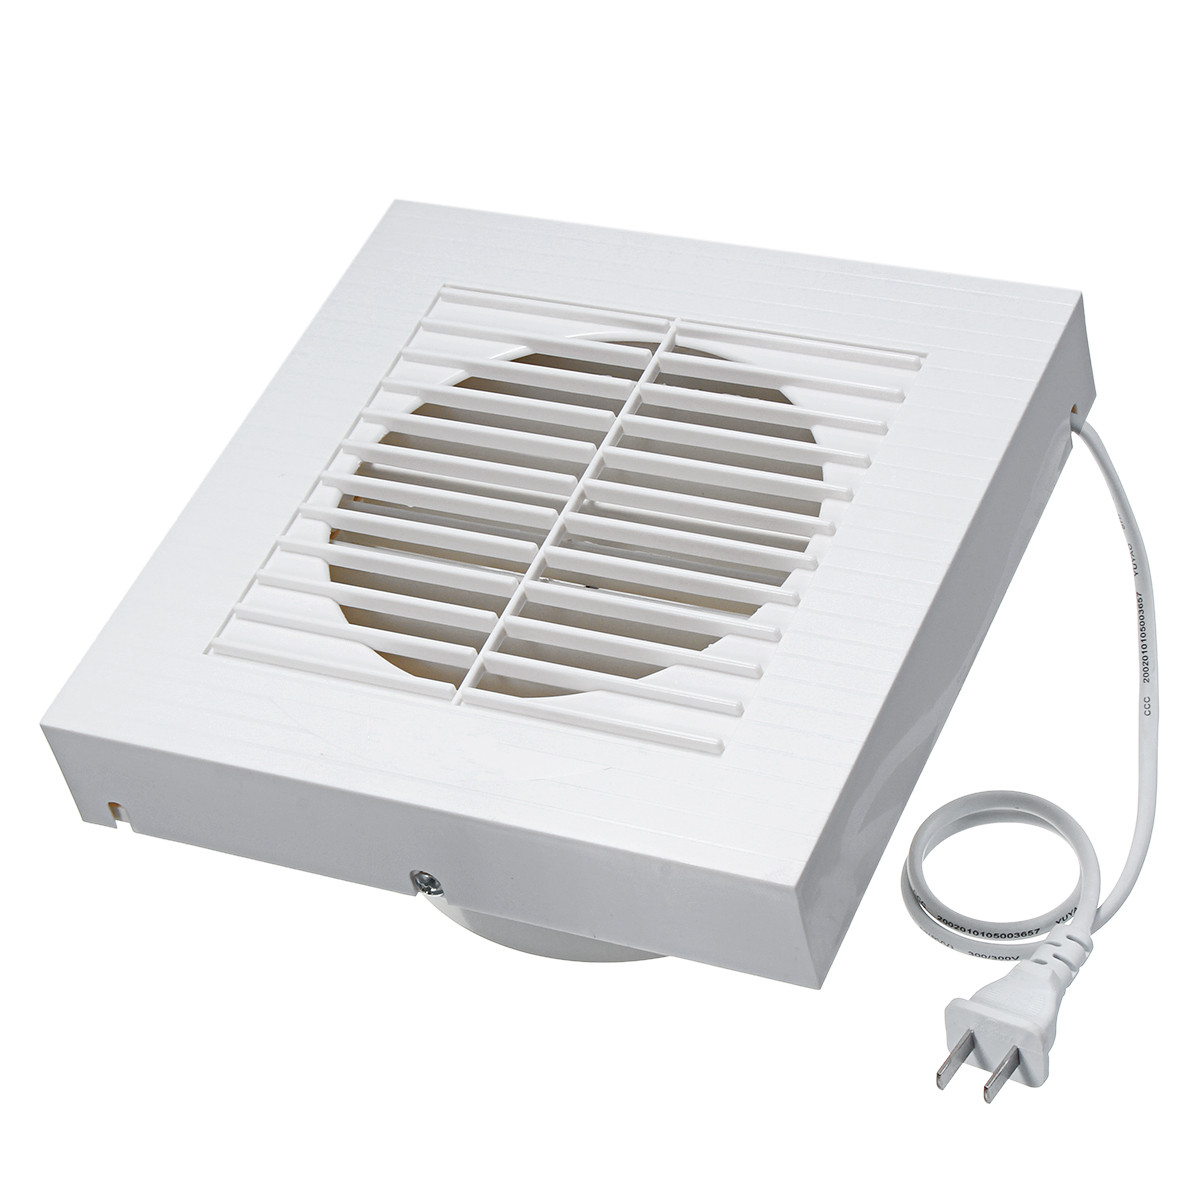 Small Ventilation Fans : Inch v mini exhaust fan entilation blower for window